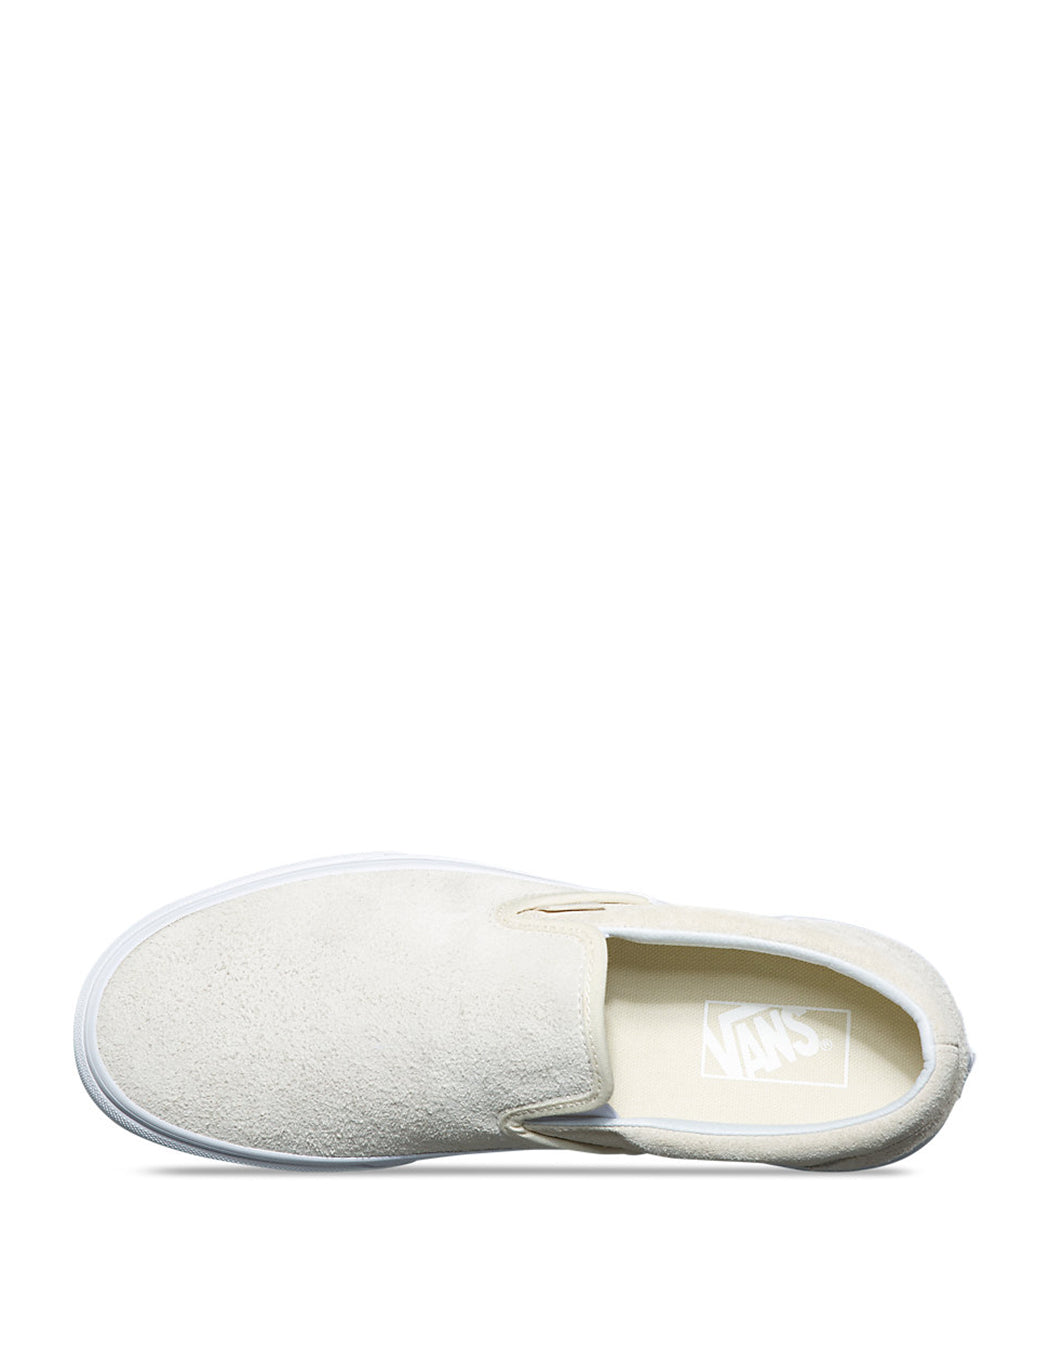 373d42a6cd ... Vans Classic Slip-On (Hairy Suede) - Turtledove Off White ...